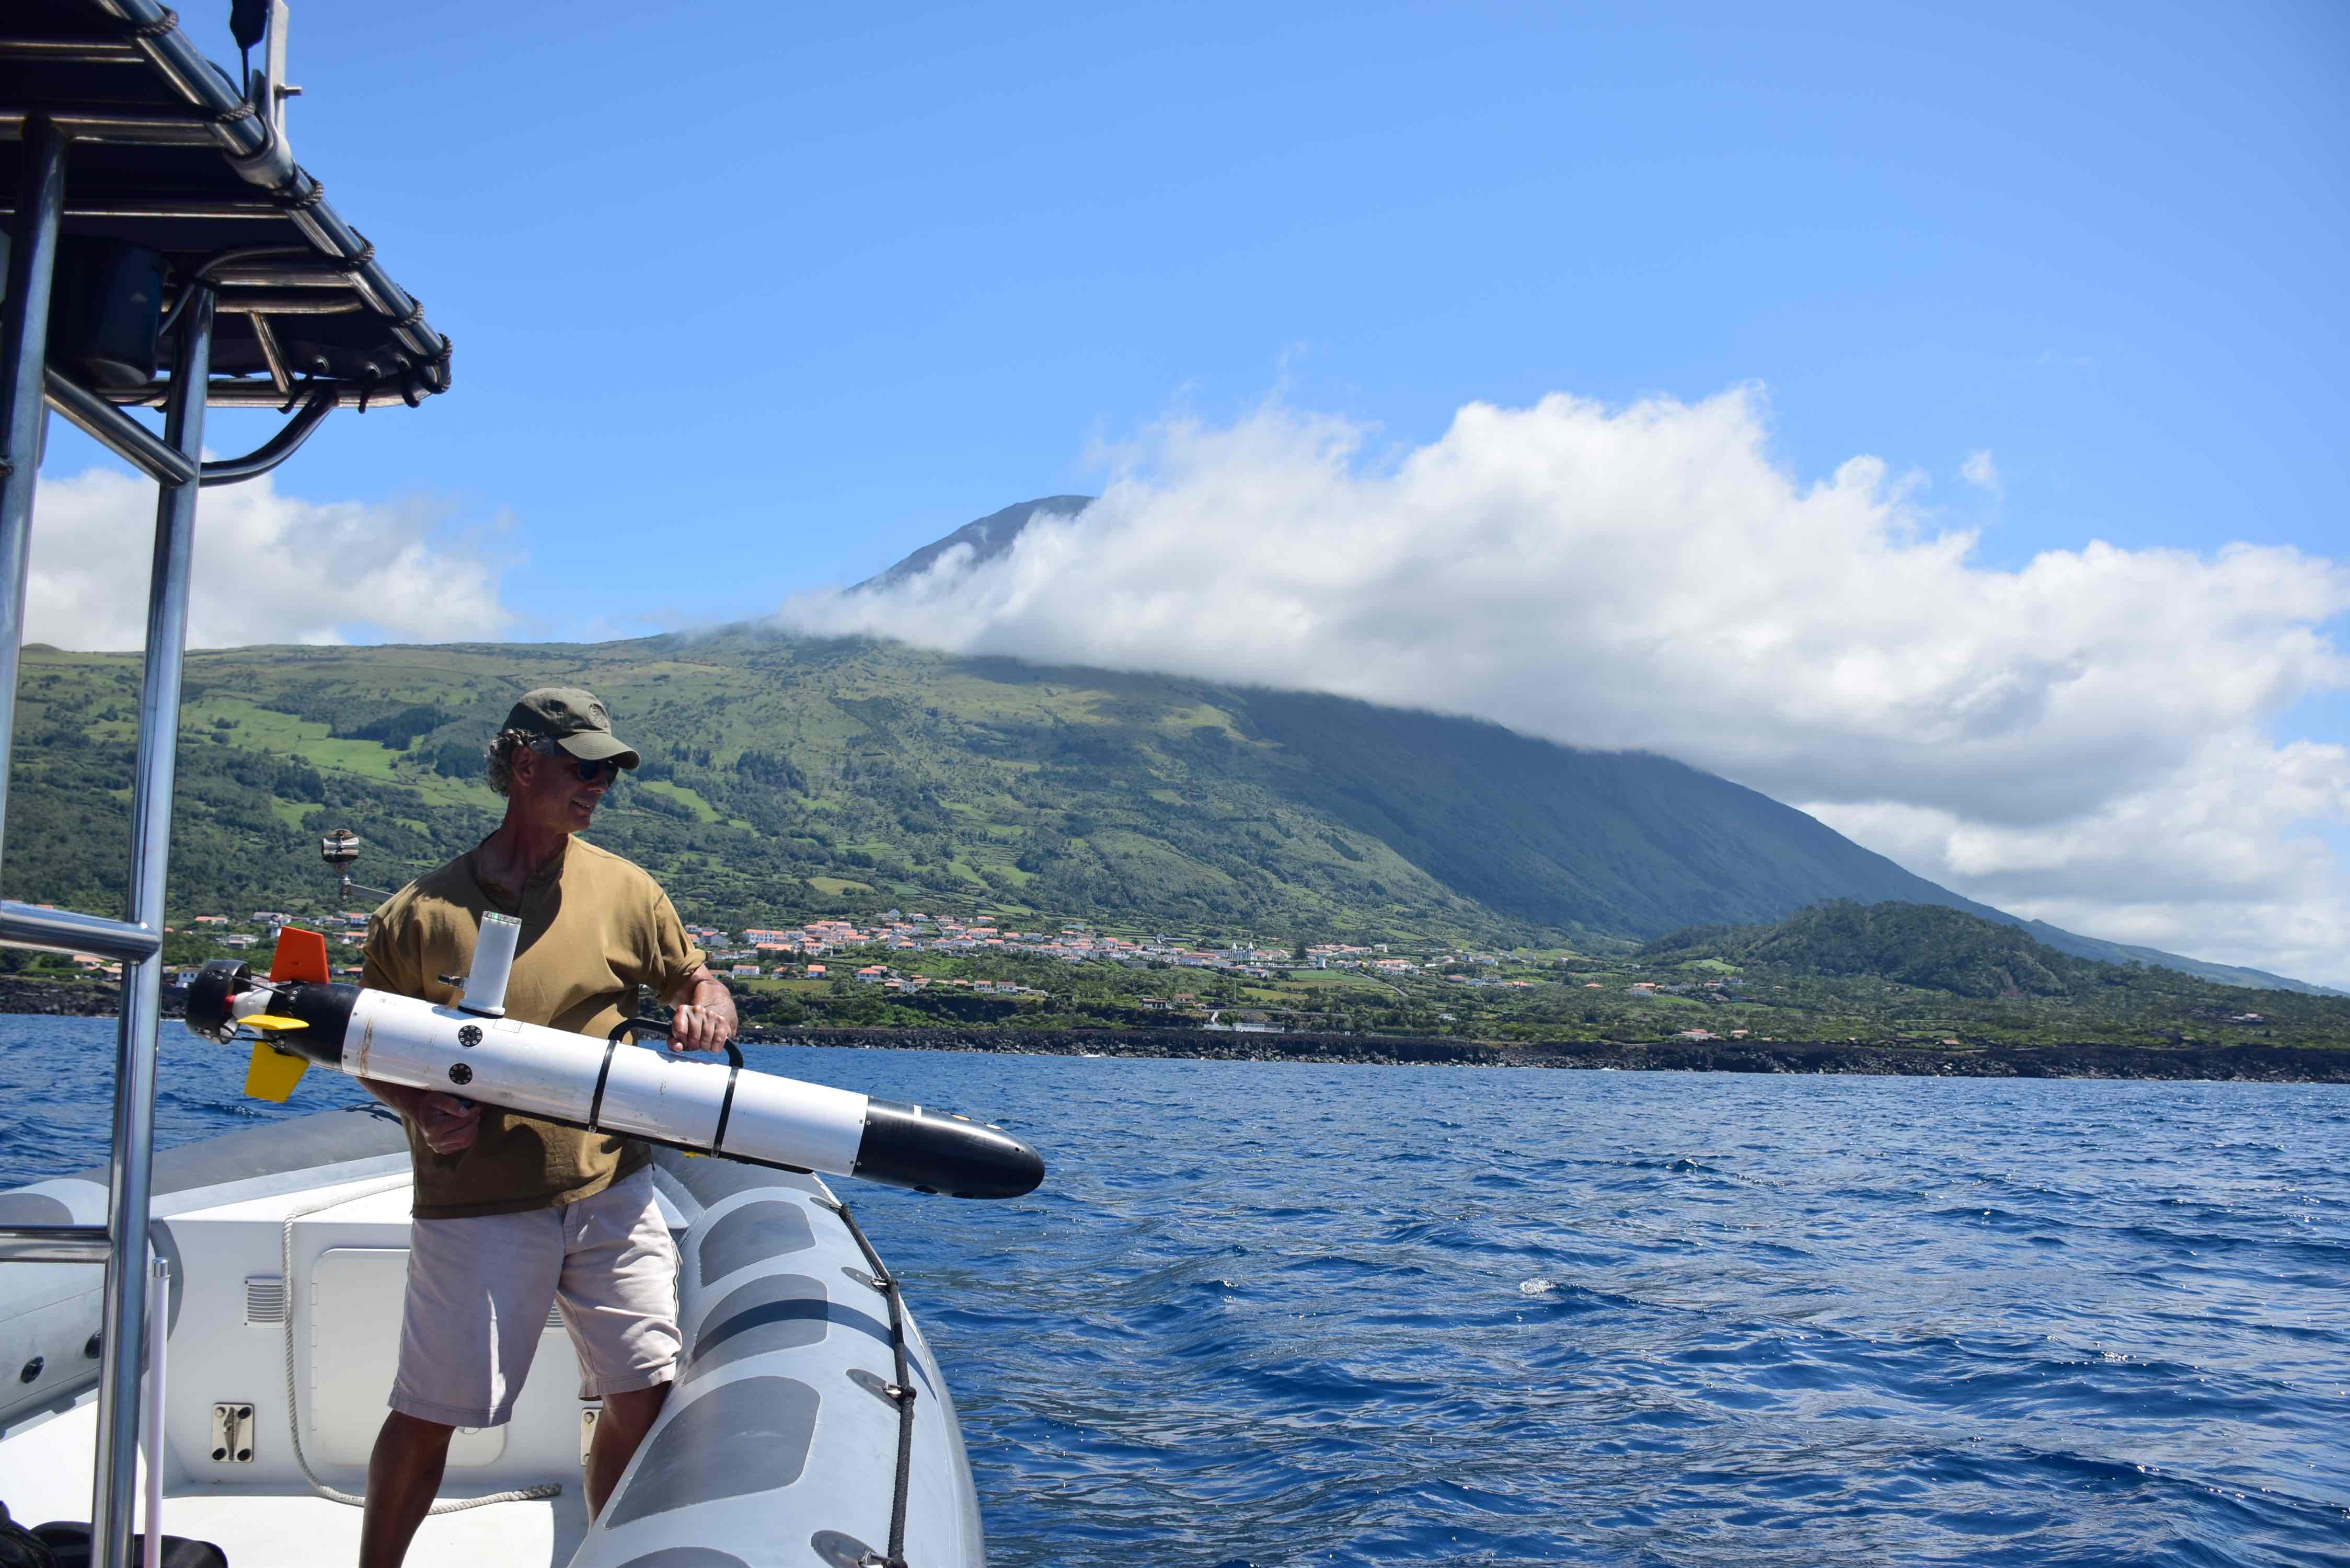 Mike Incze of NUWC deploying his Iver off of Pico island.